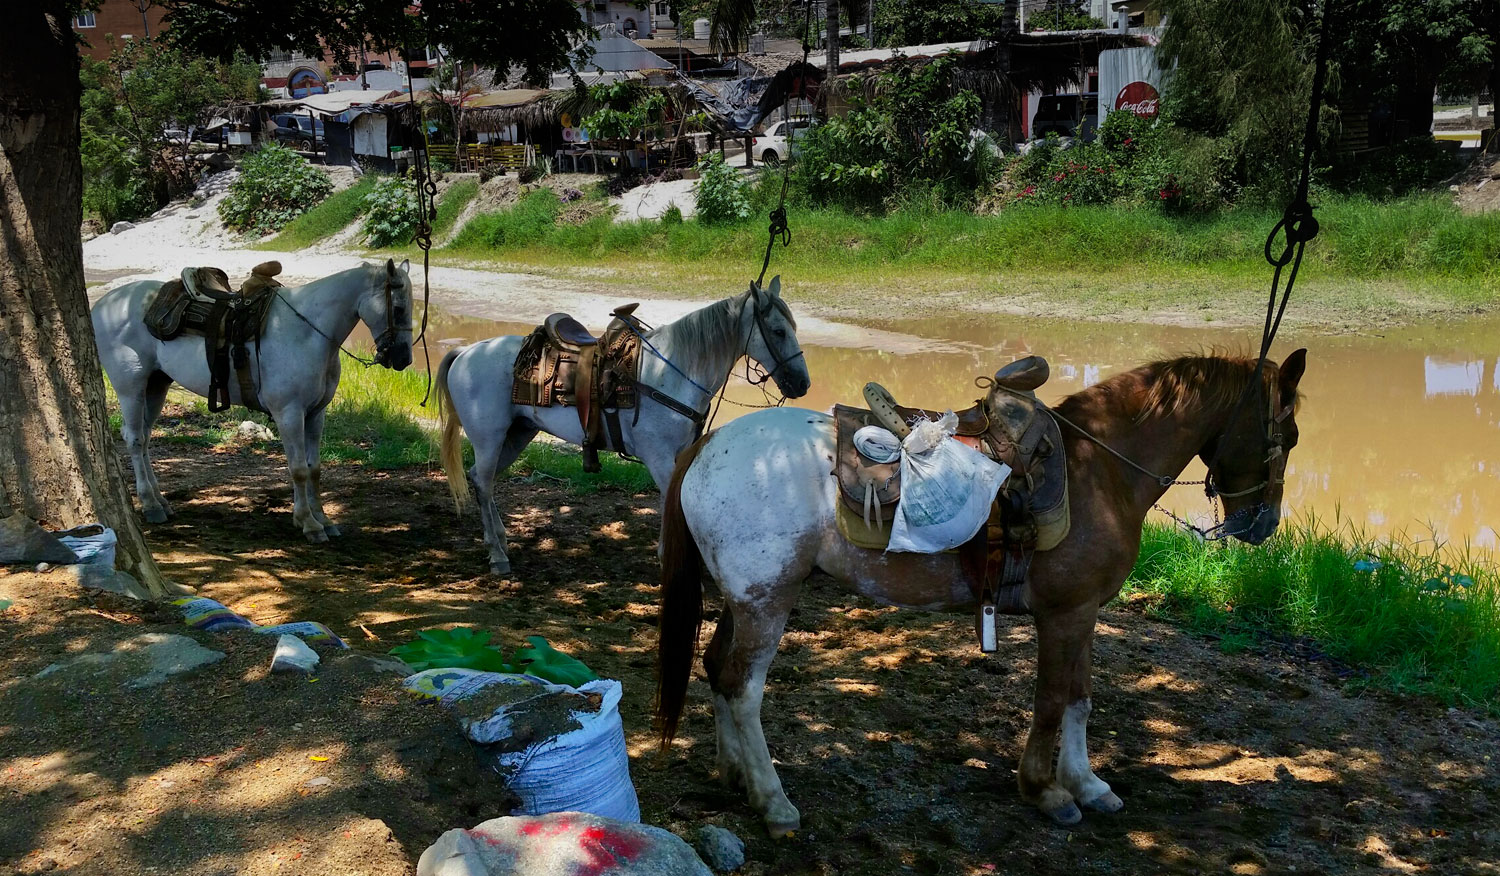 047-horses-with-saddles-by-river.jpg